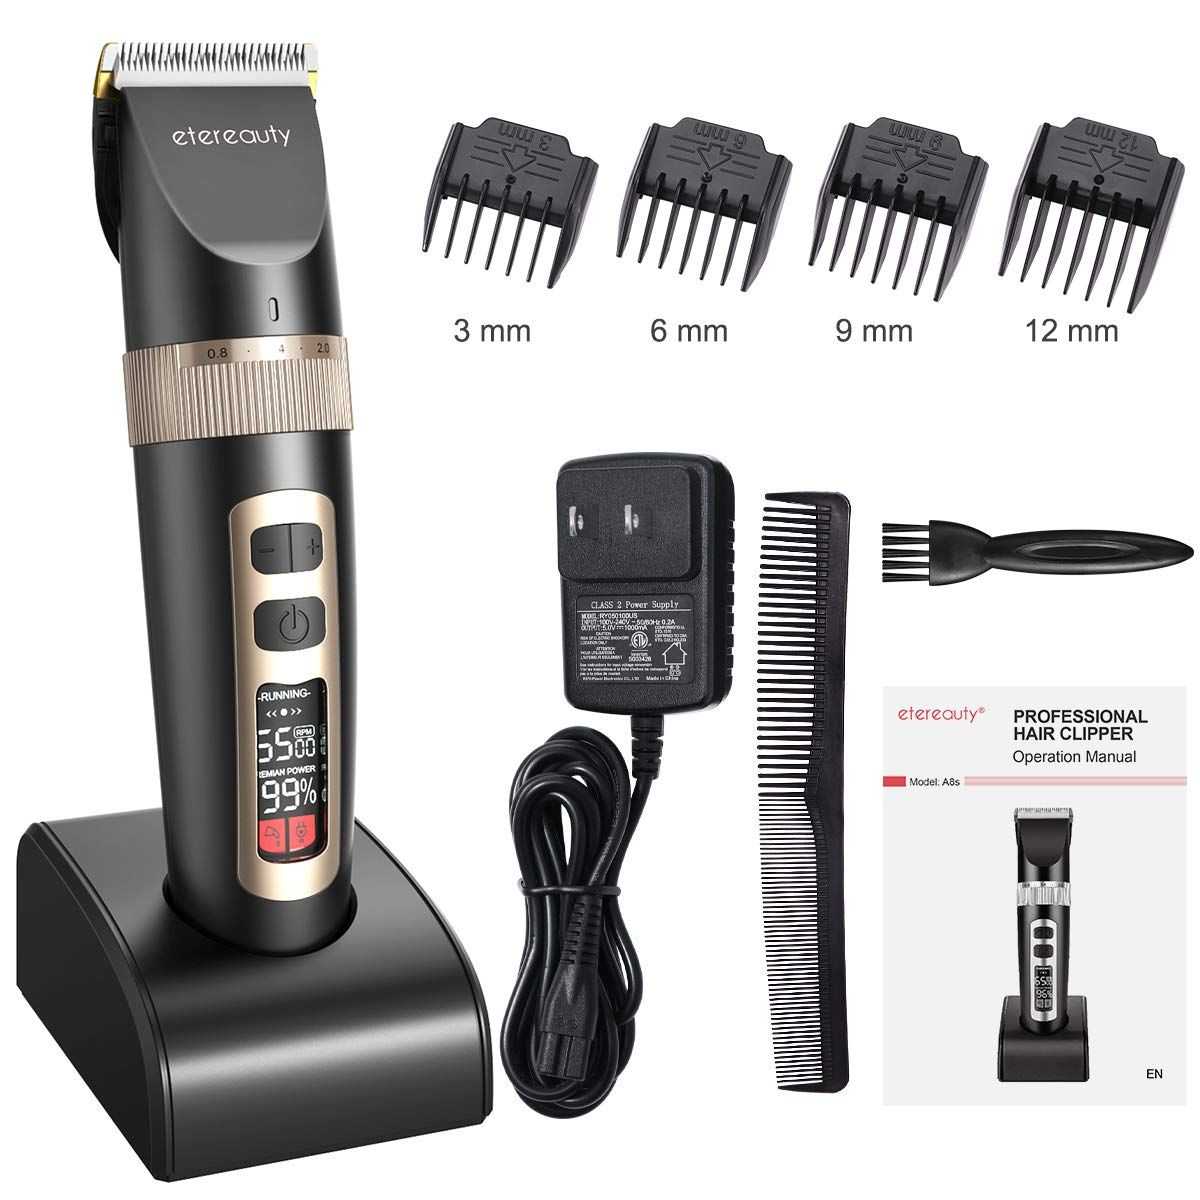 Hair Clippers for Men ETEREAUTY Pro Cordless Hair Trimmer